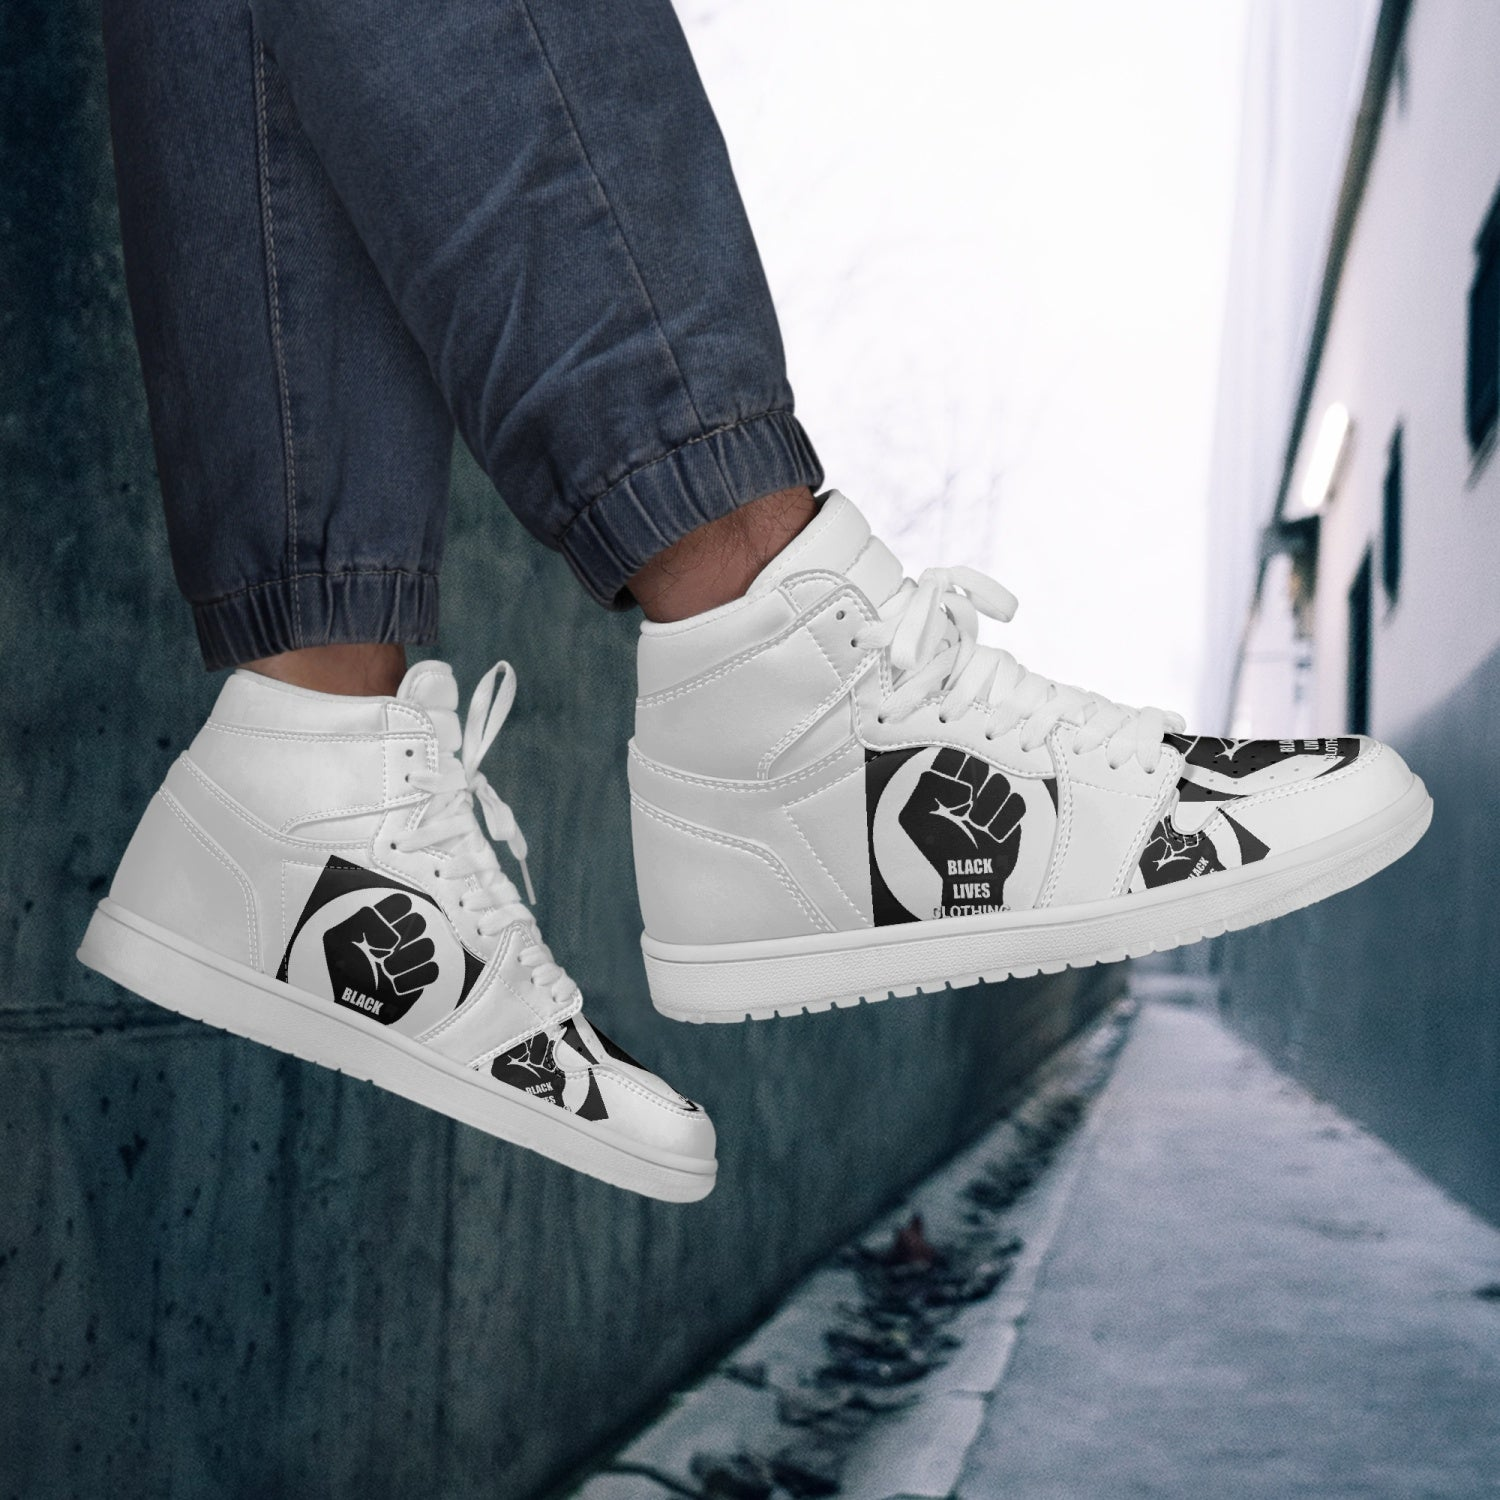 236 Black  Lives Clothing-Top Leather Sneakers - White - Black Lives Clothing